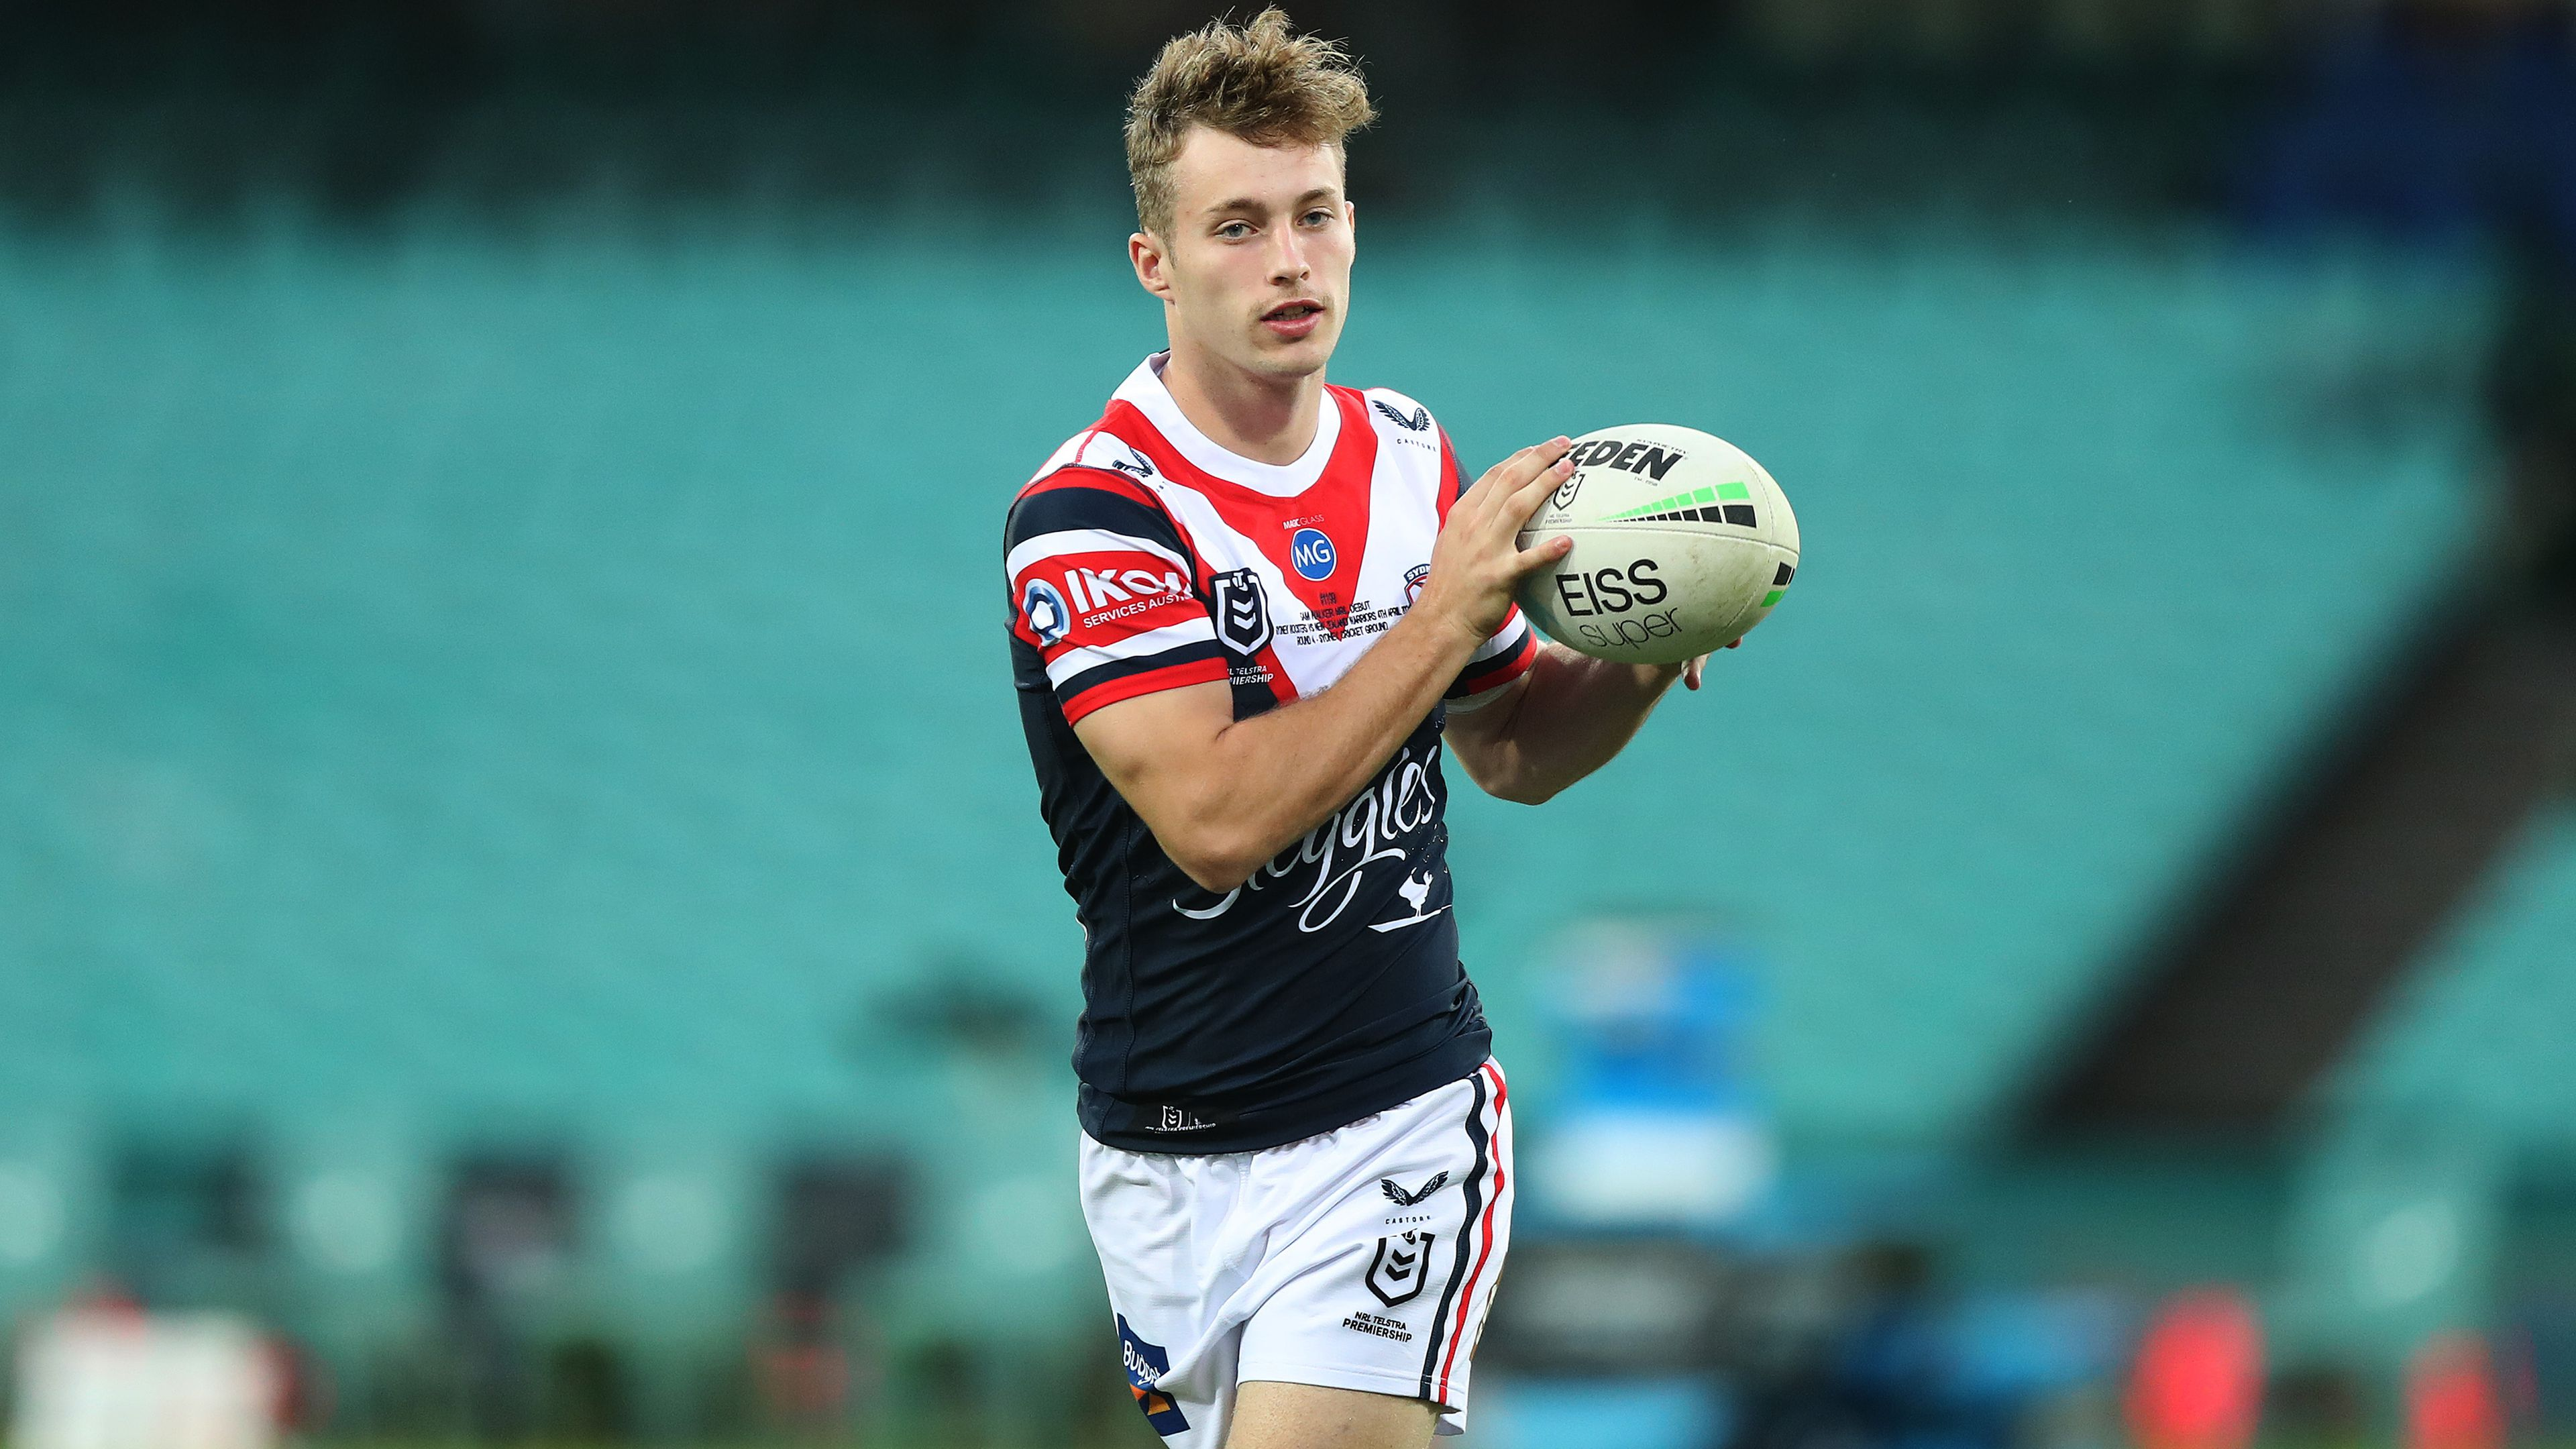 Sam Walker's praise for Sydney Roosters coach Trent Robinson after incredible NRL debut